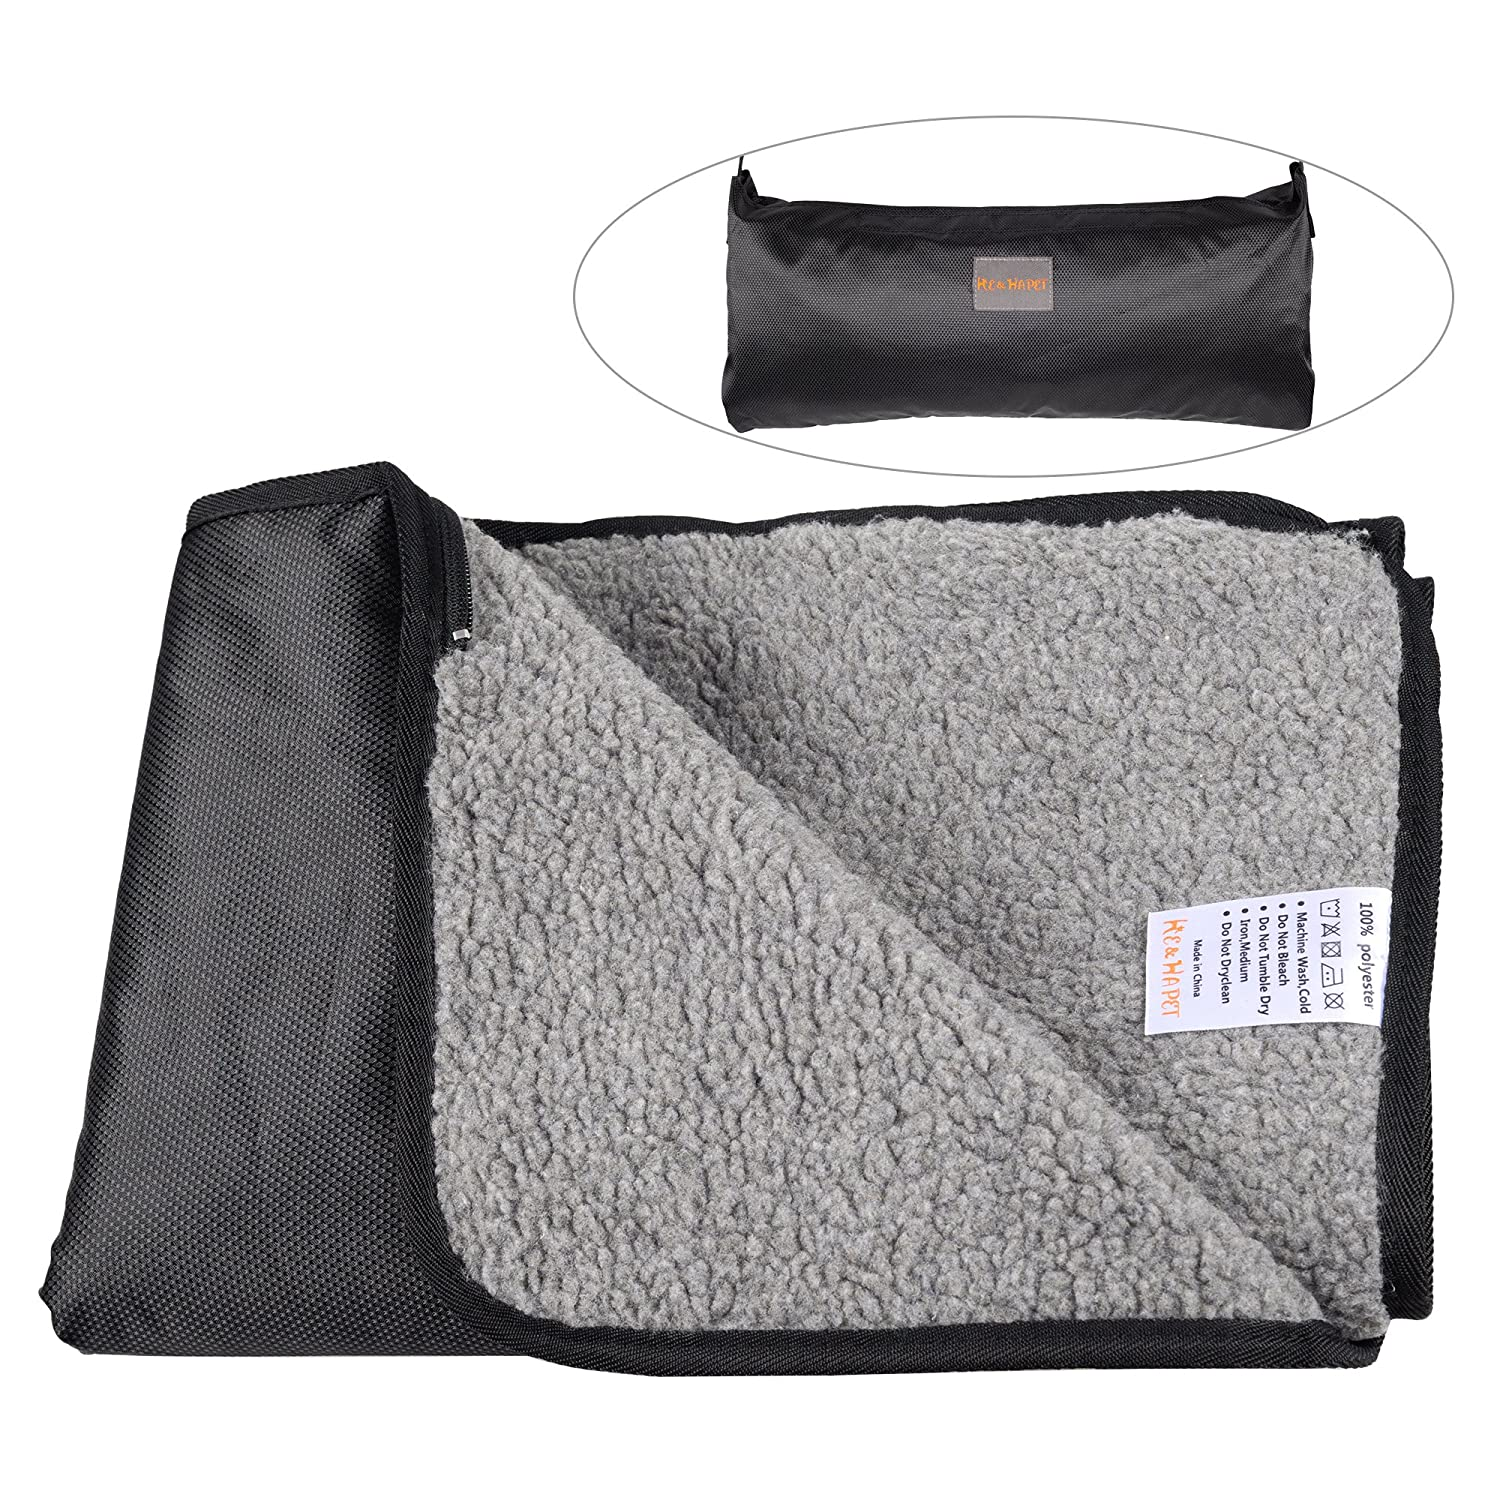 262aa5e73f Amazon.com   He Ha pet Waterproof Pet Blanket Dog Blankets Medium Outdoor  and Indoor for Medium and Large Dogs and Cats with Storage Bag (38